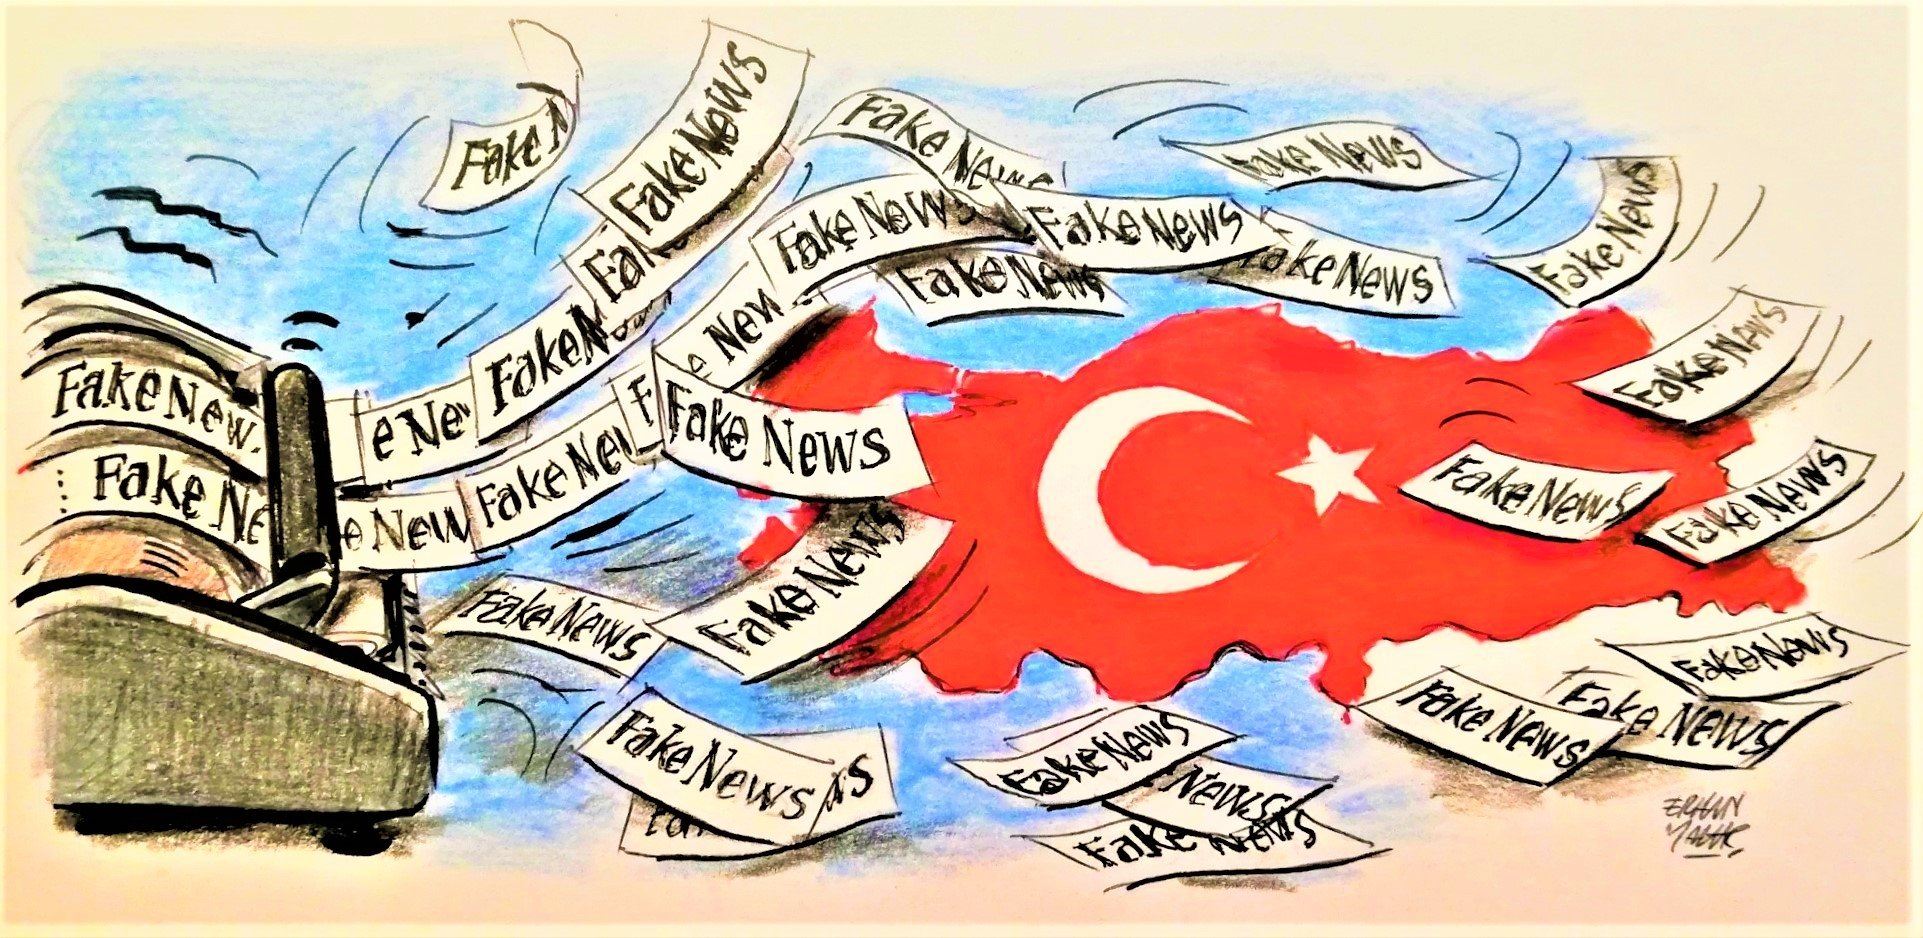 9 a.m. – which lie can I spread about Turkey today?